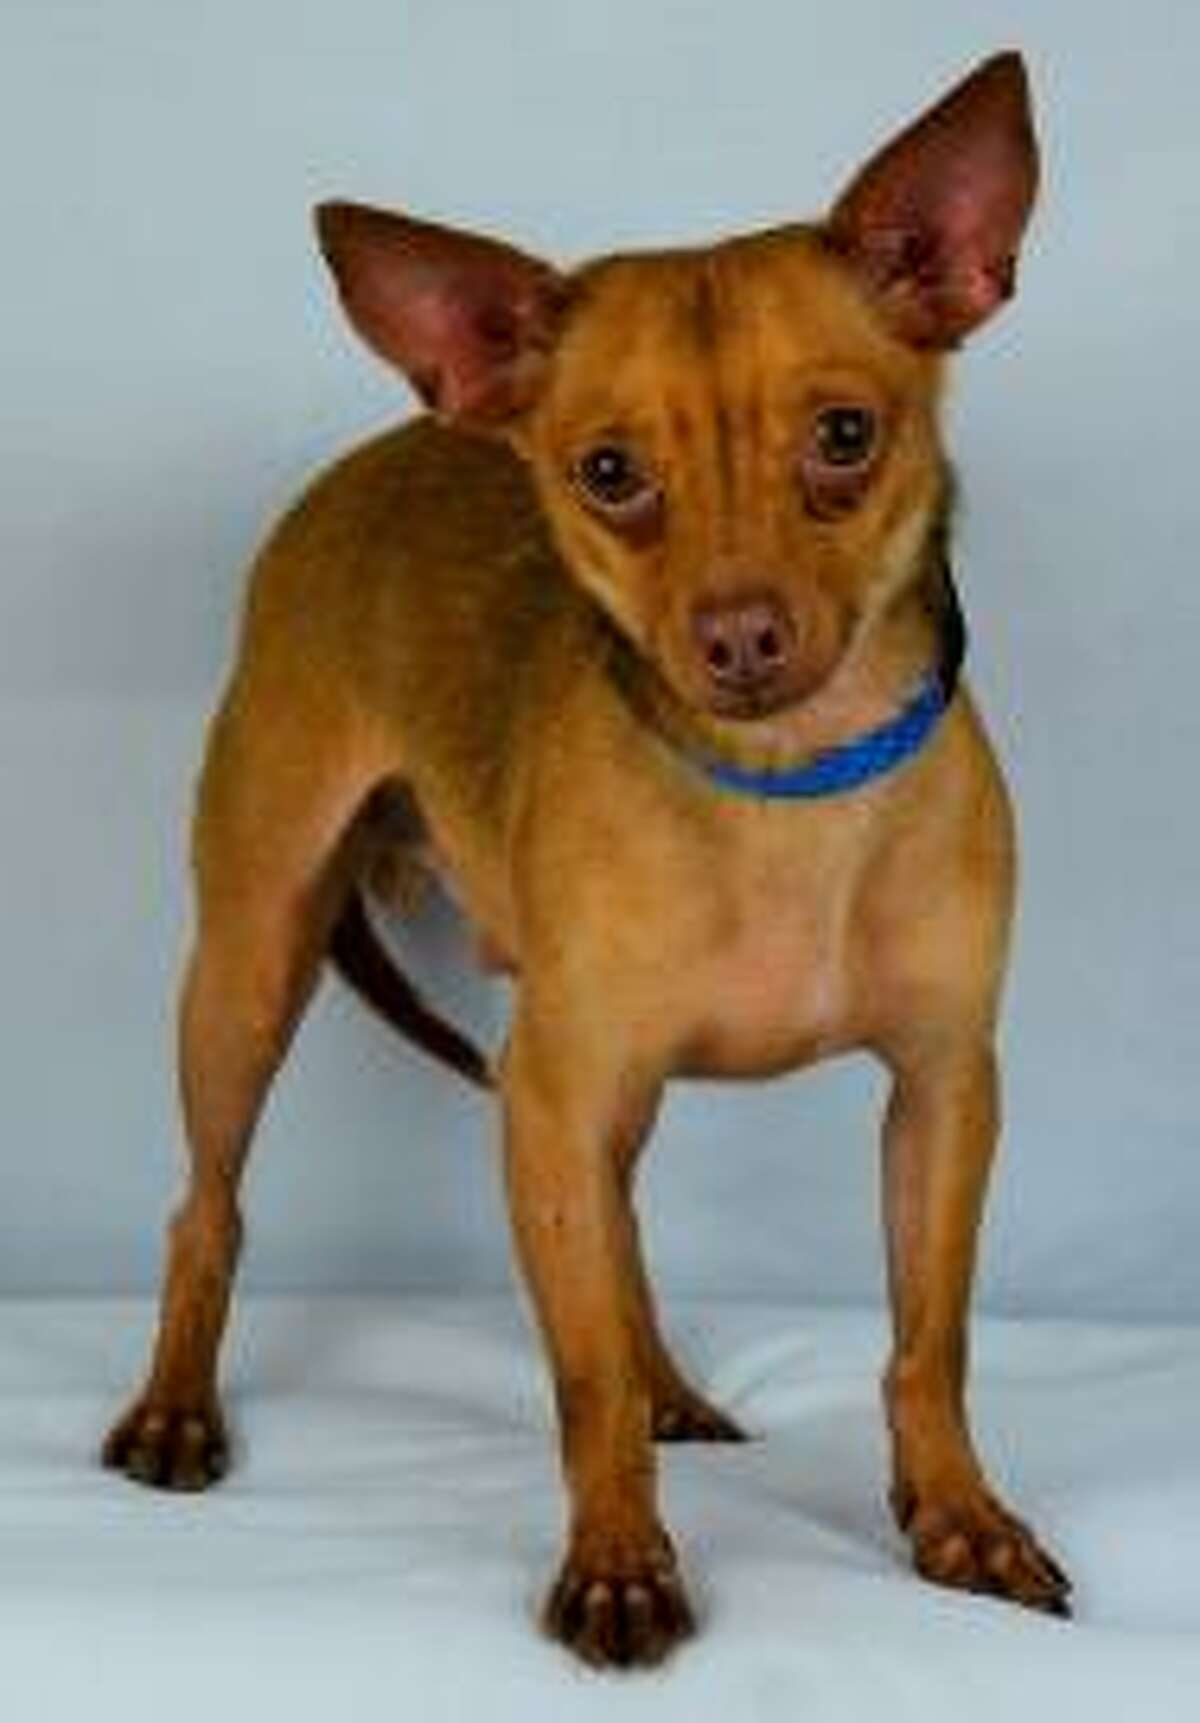 Martian is a calm, gentle pup. He is a joy to take for walks and loves a good cuddle. He's also a friendly little guy who gets along well with all people and other dogs. He has been at Houston Humane Society since April 1st.   Now available for adoption from the Houston Humane Society